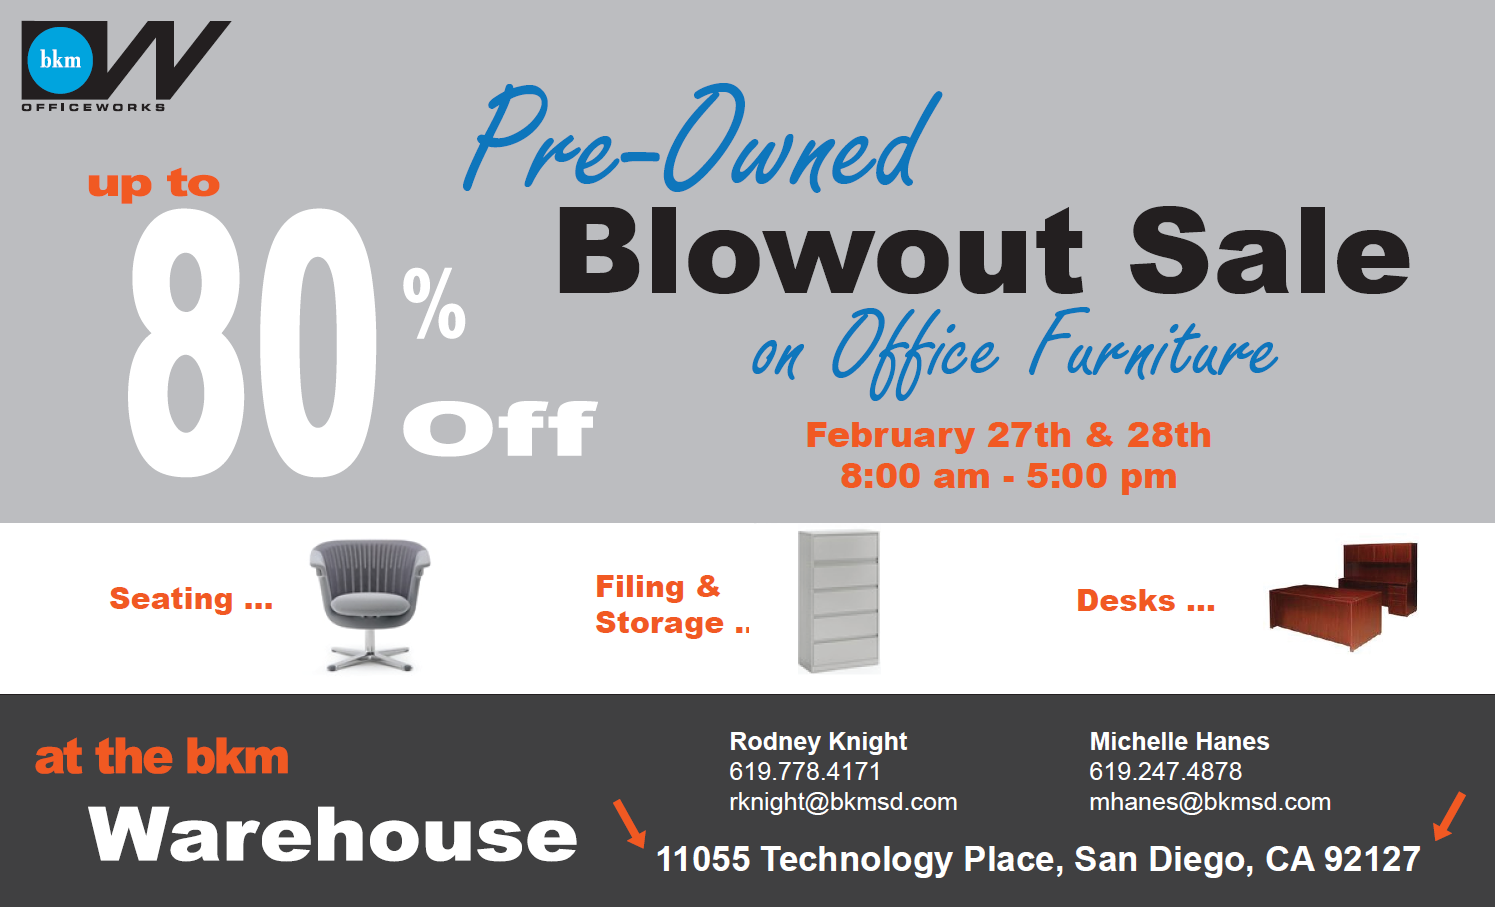 Come and check out our Blowout Sale of Pre-Owned Office Furniture!